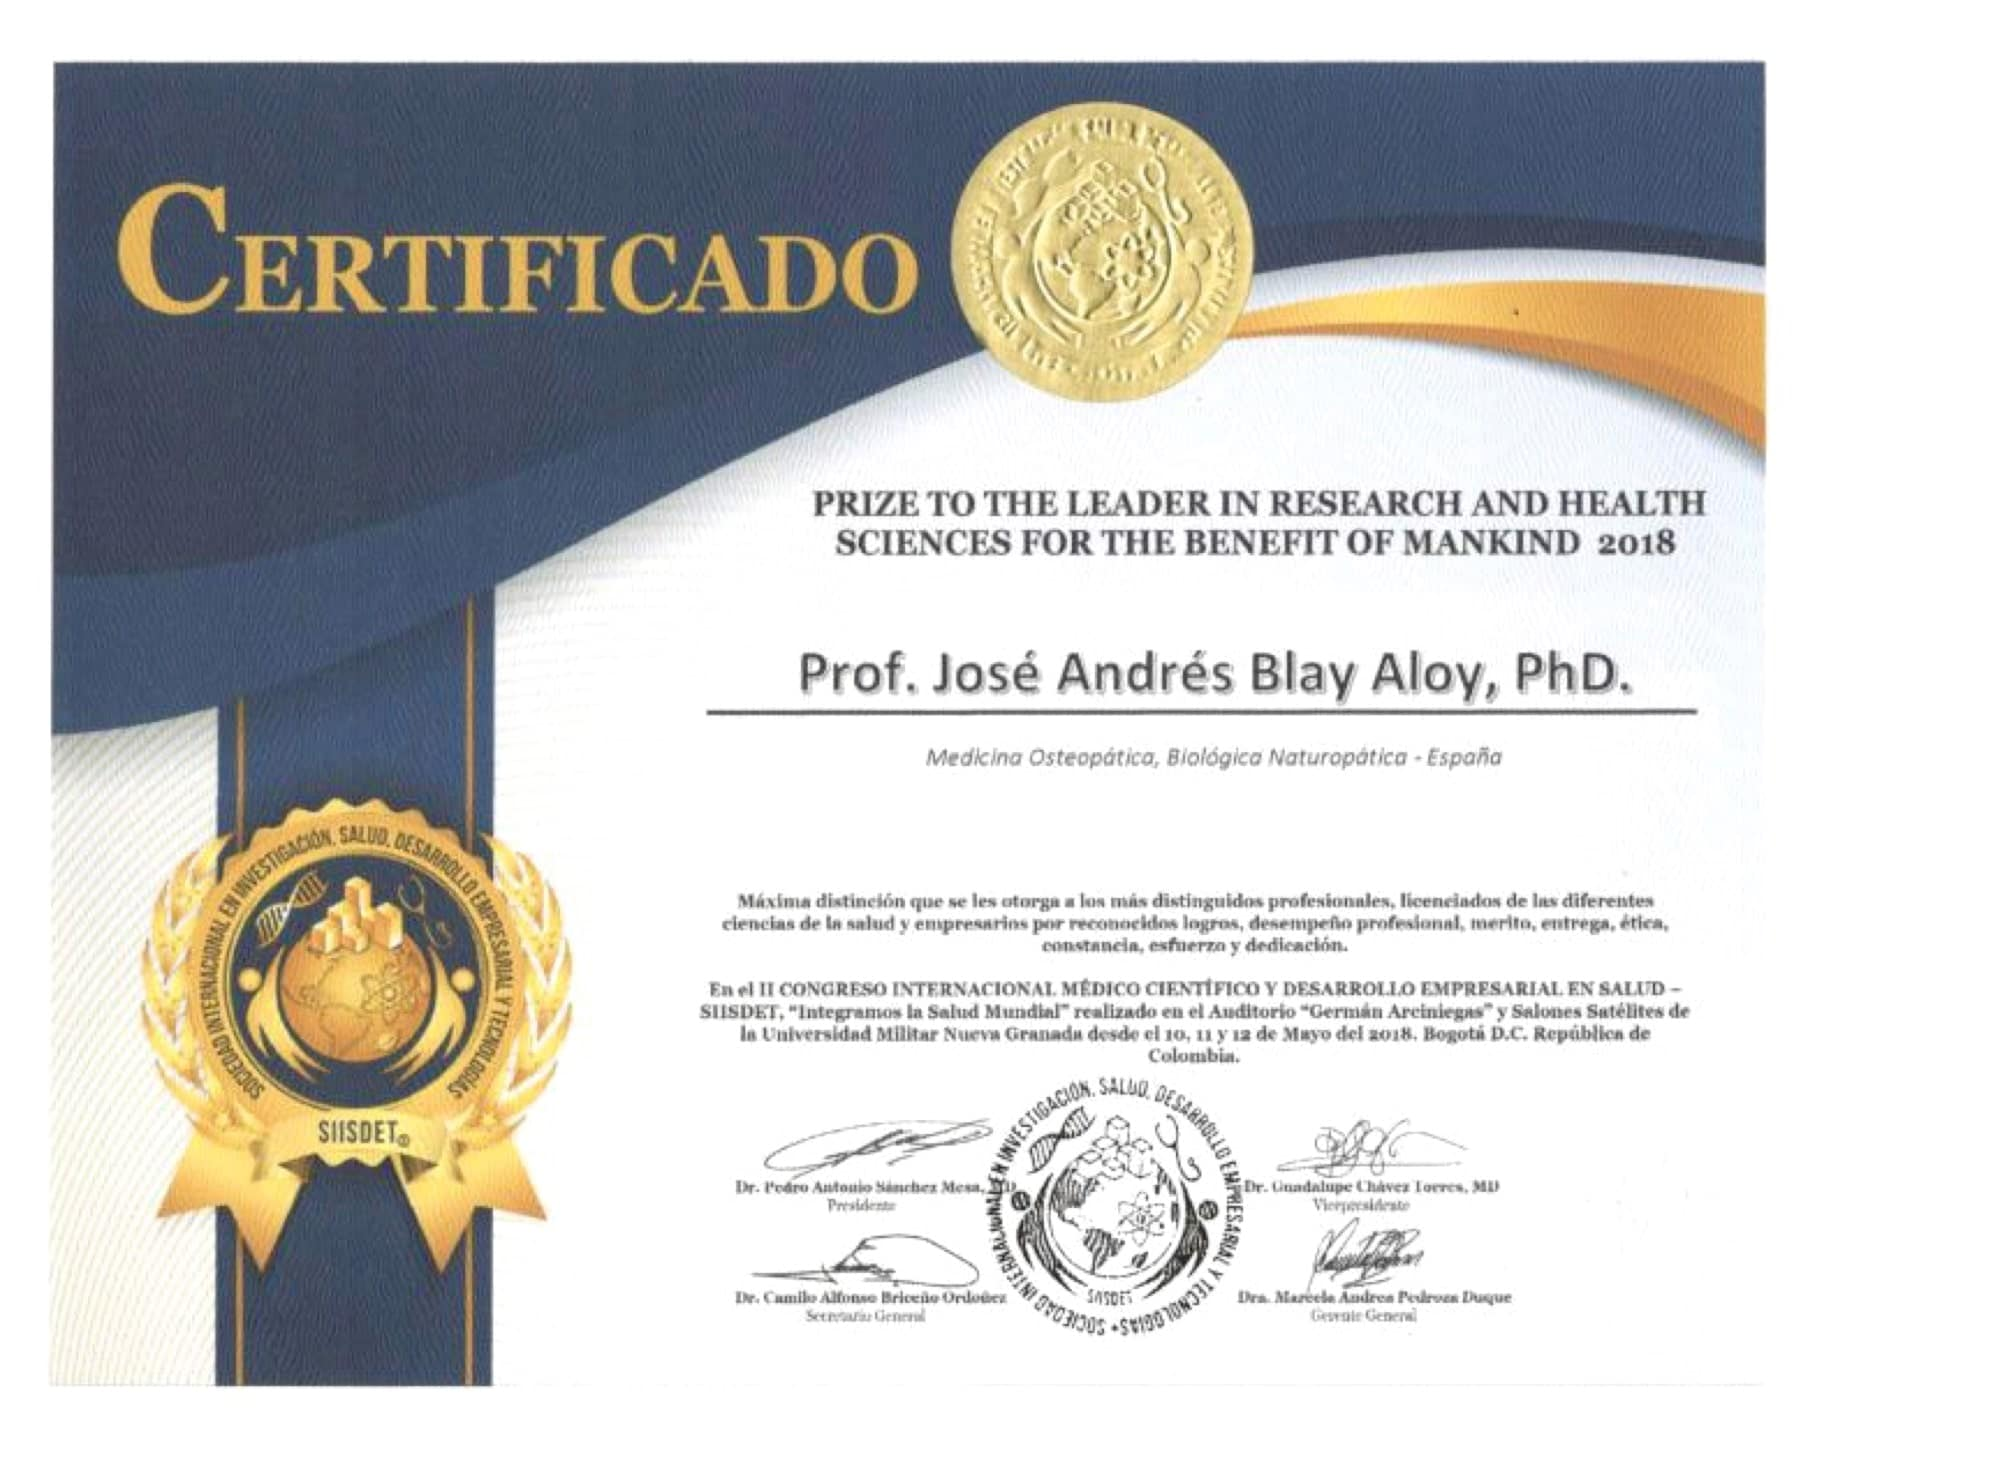 Prize To The Leader In Research And Health Sciences Jose Andres Blay Aloy